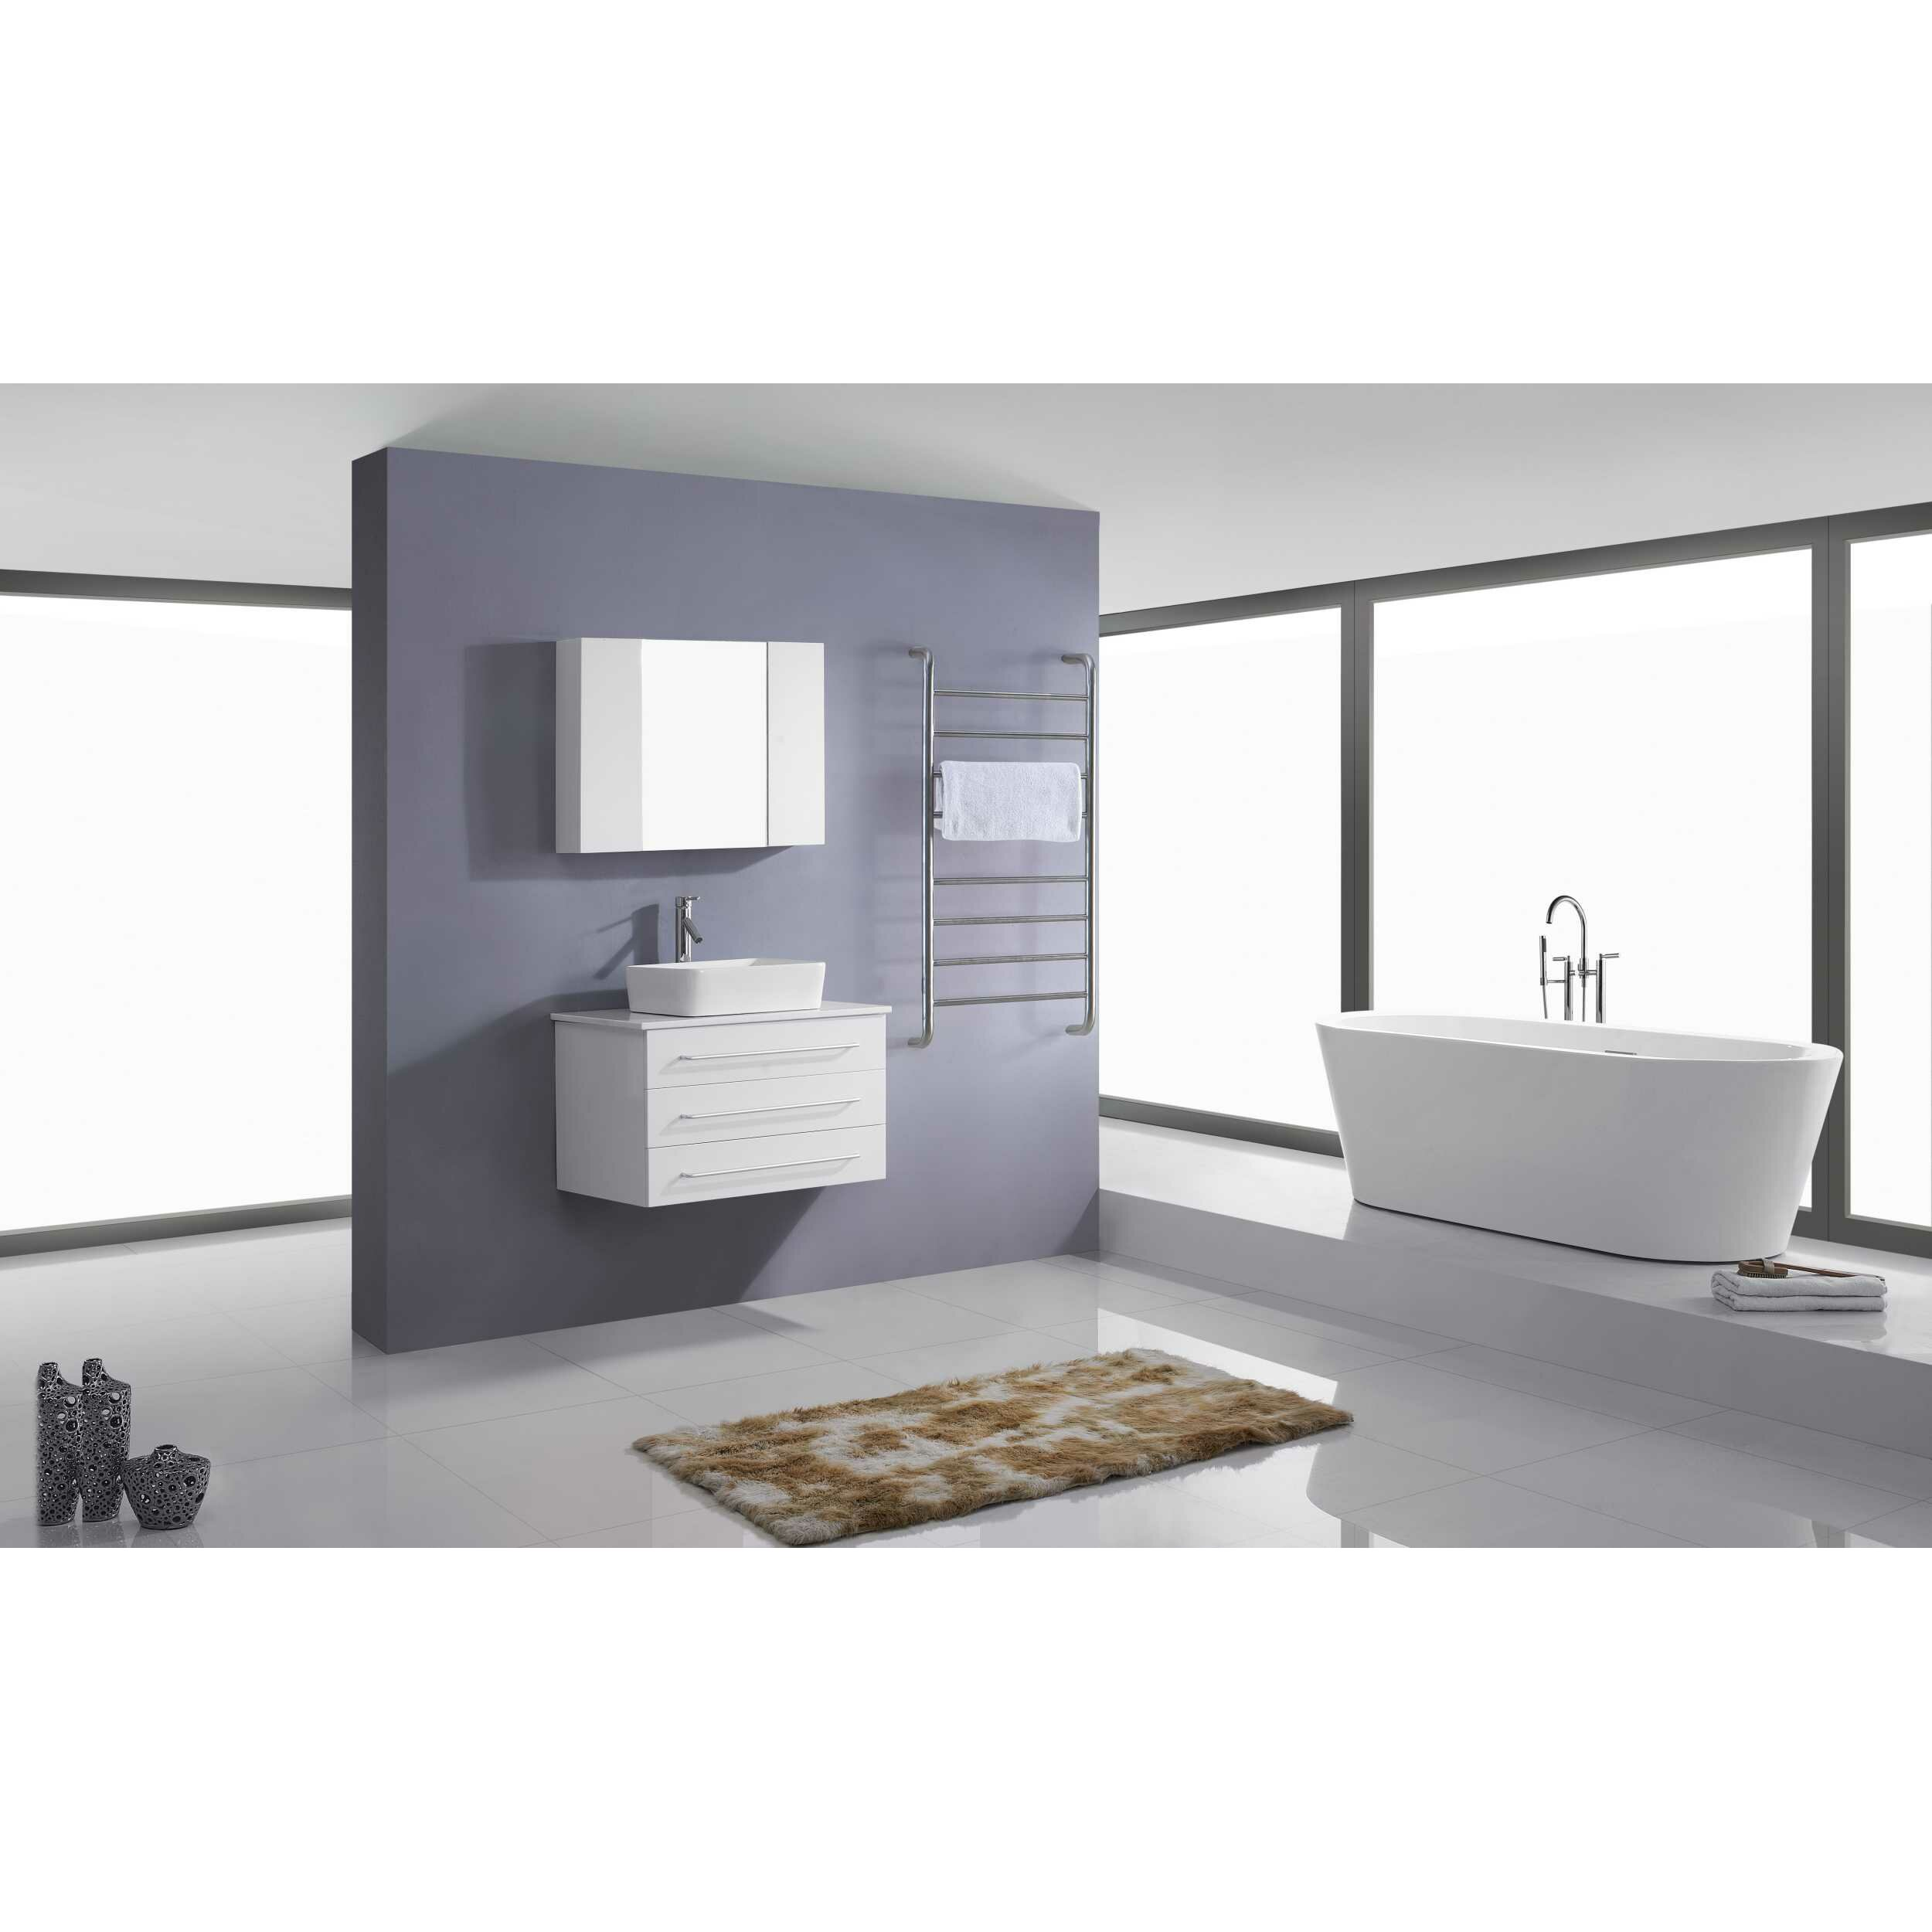 Virtu ivy 32 quot single floating bathroom vanity set with mirror